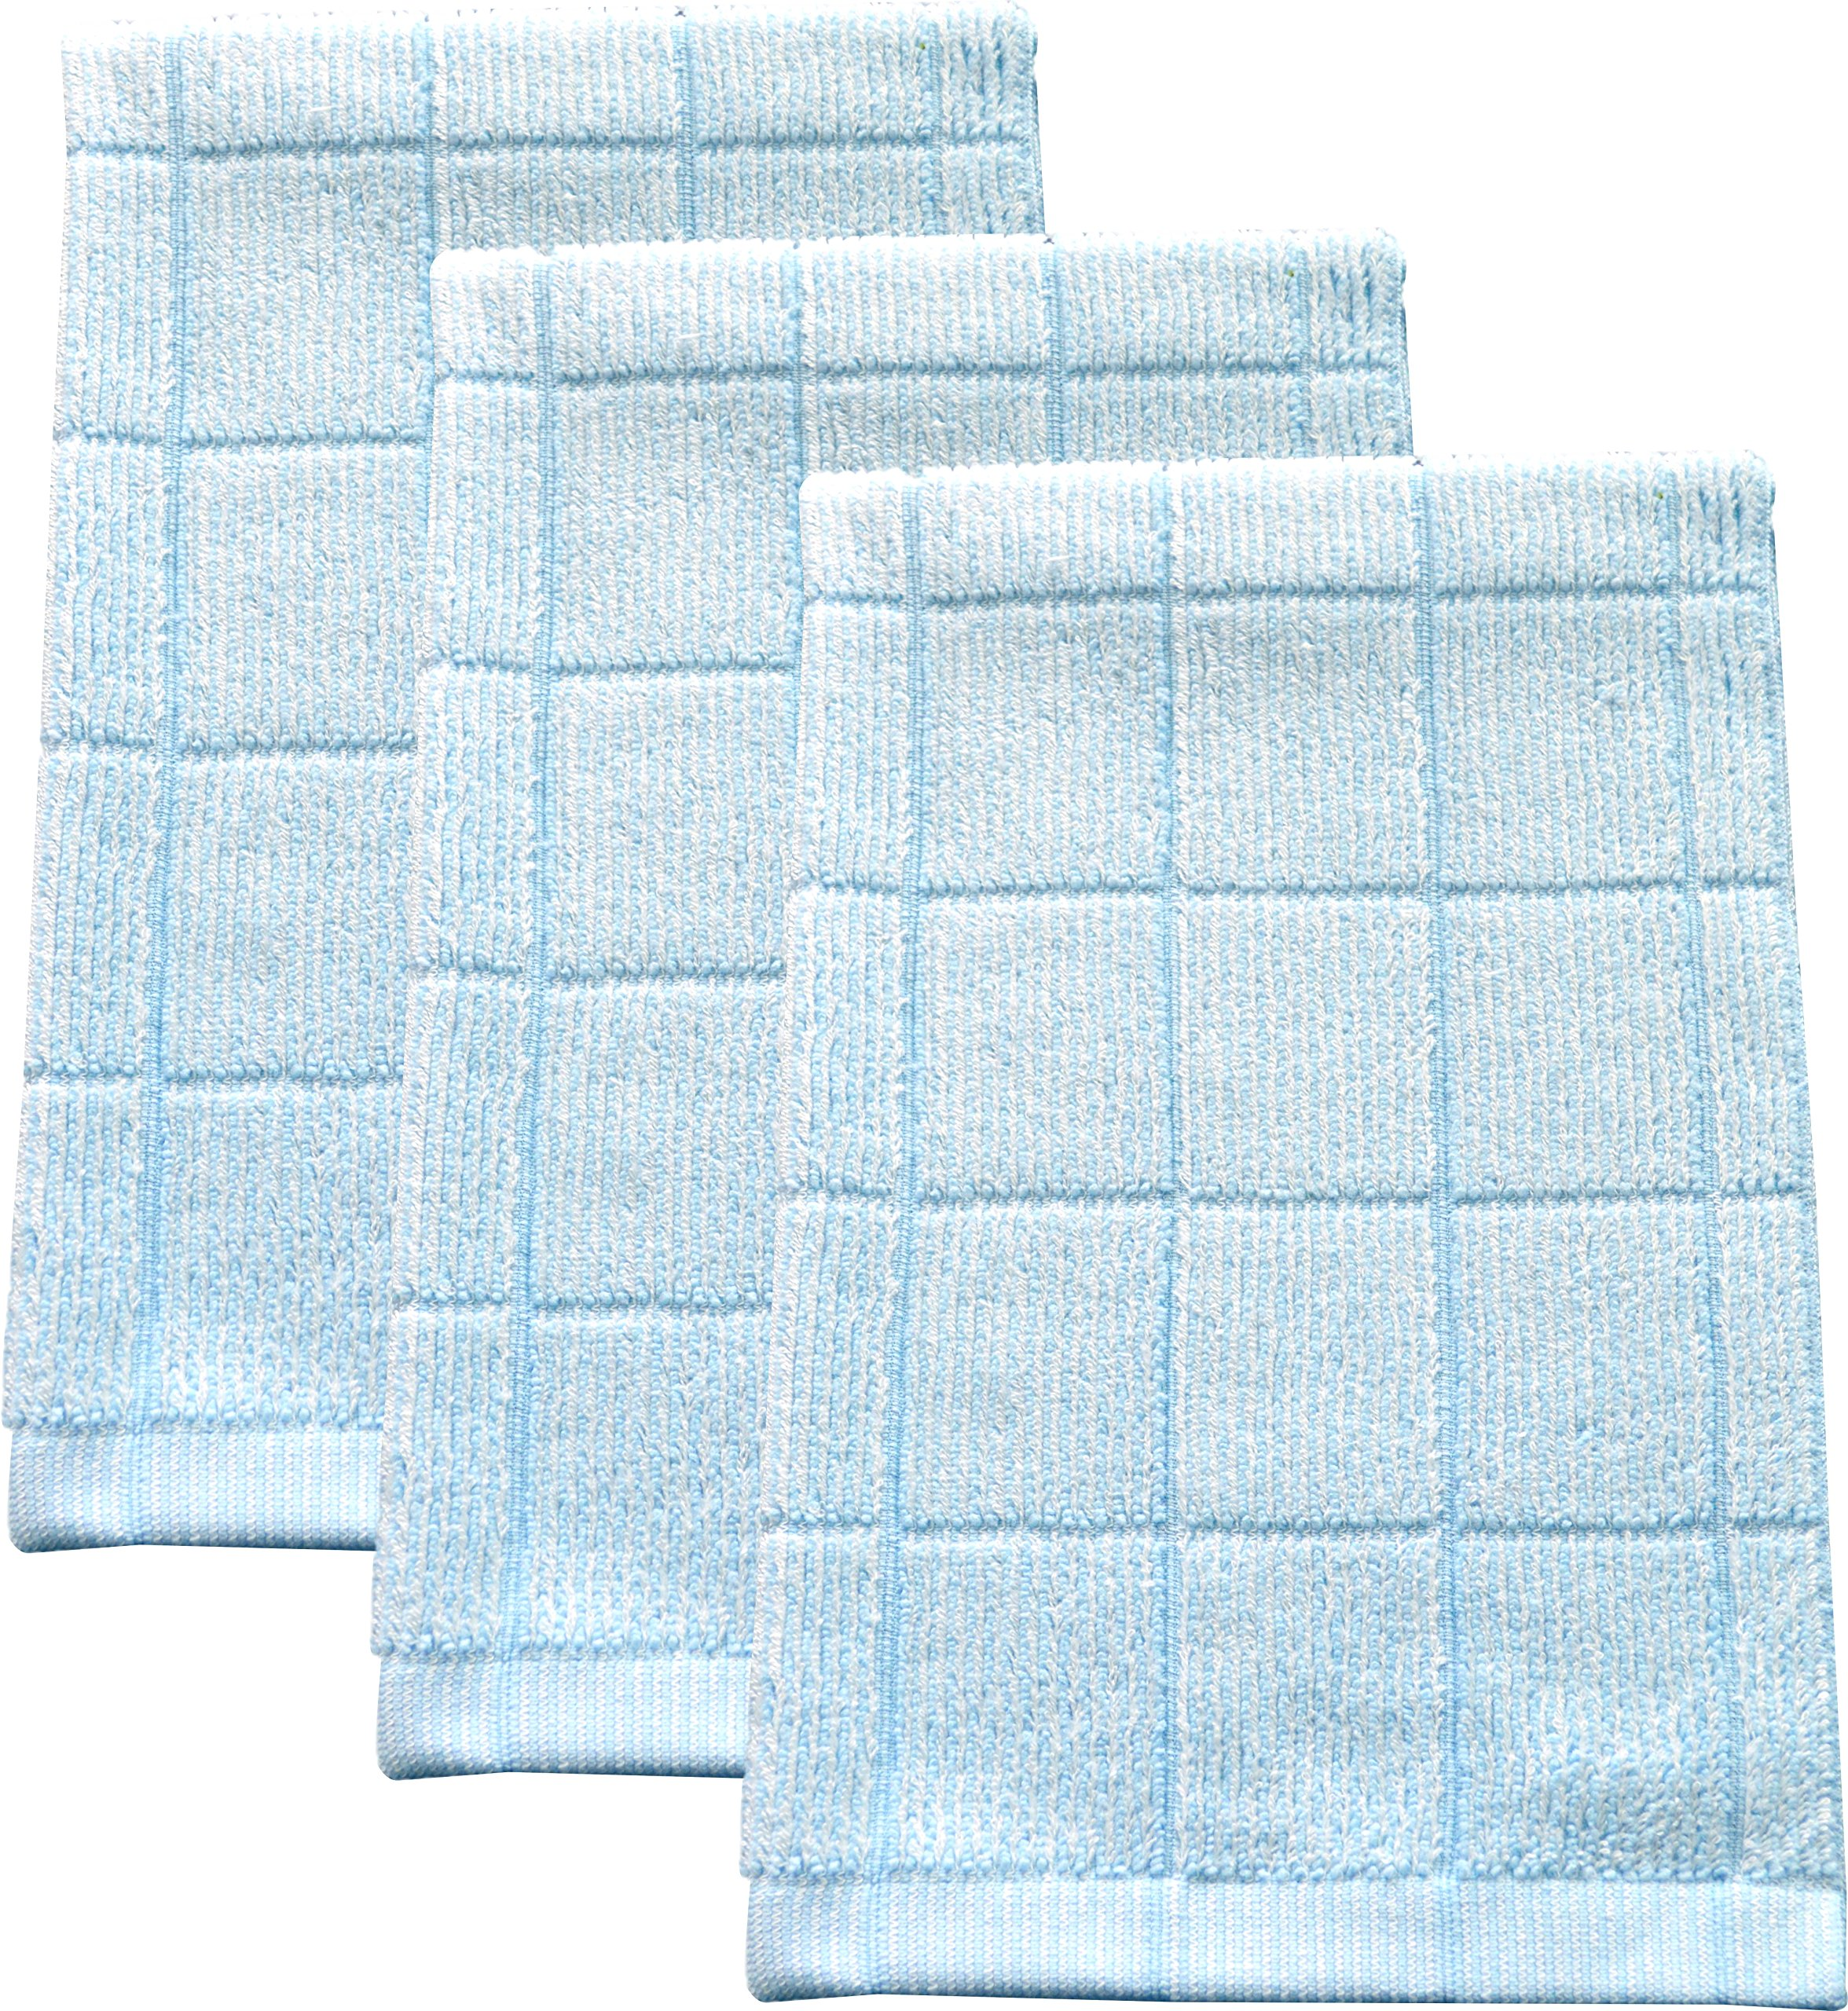 Fabresh Absorbent, Quick-Drying Kitchen Dish Towels | Premium Bamboo and Microfiber Blend for Cleaning, Washing, and Drying | Durable Reinforced Edging | 26'' X 16'' Sky Blue (Set of 3)